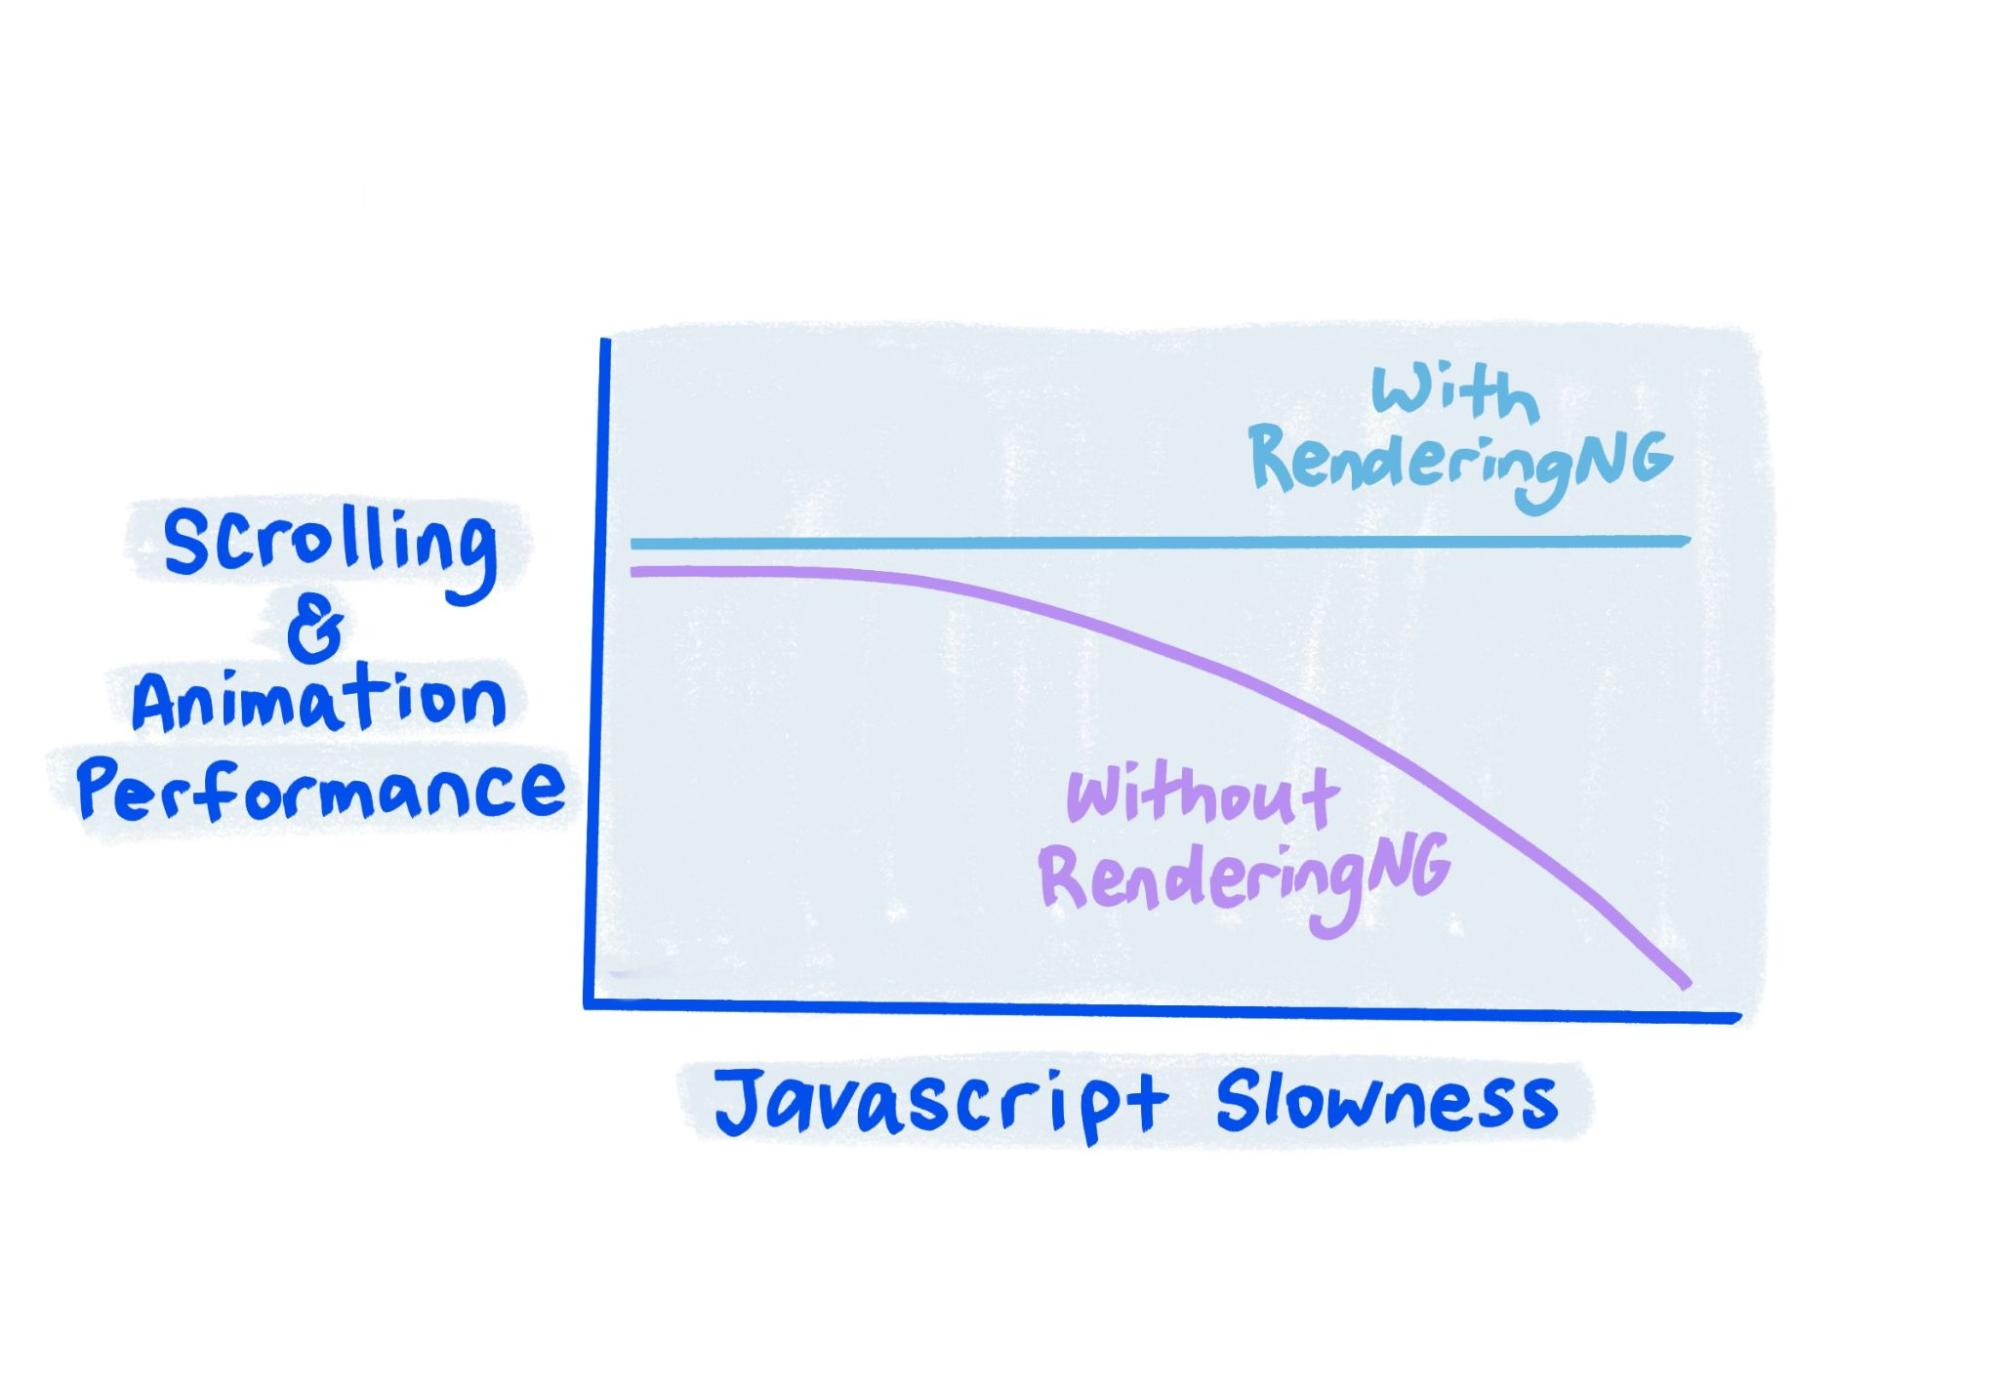 Sketch shows that with RenderingNG performance stays solid even when JavaScript is very slow.